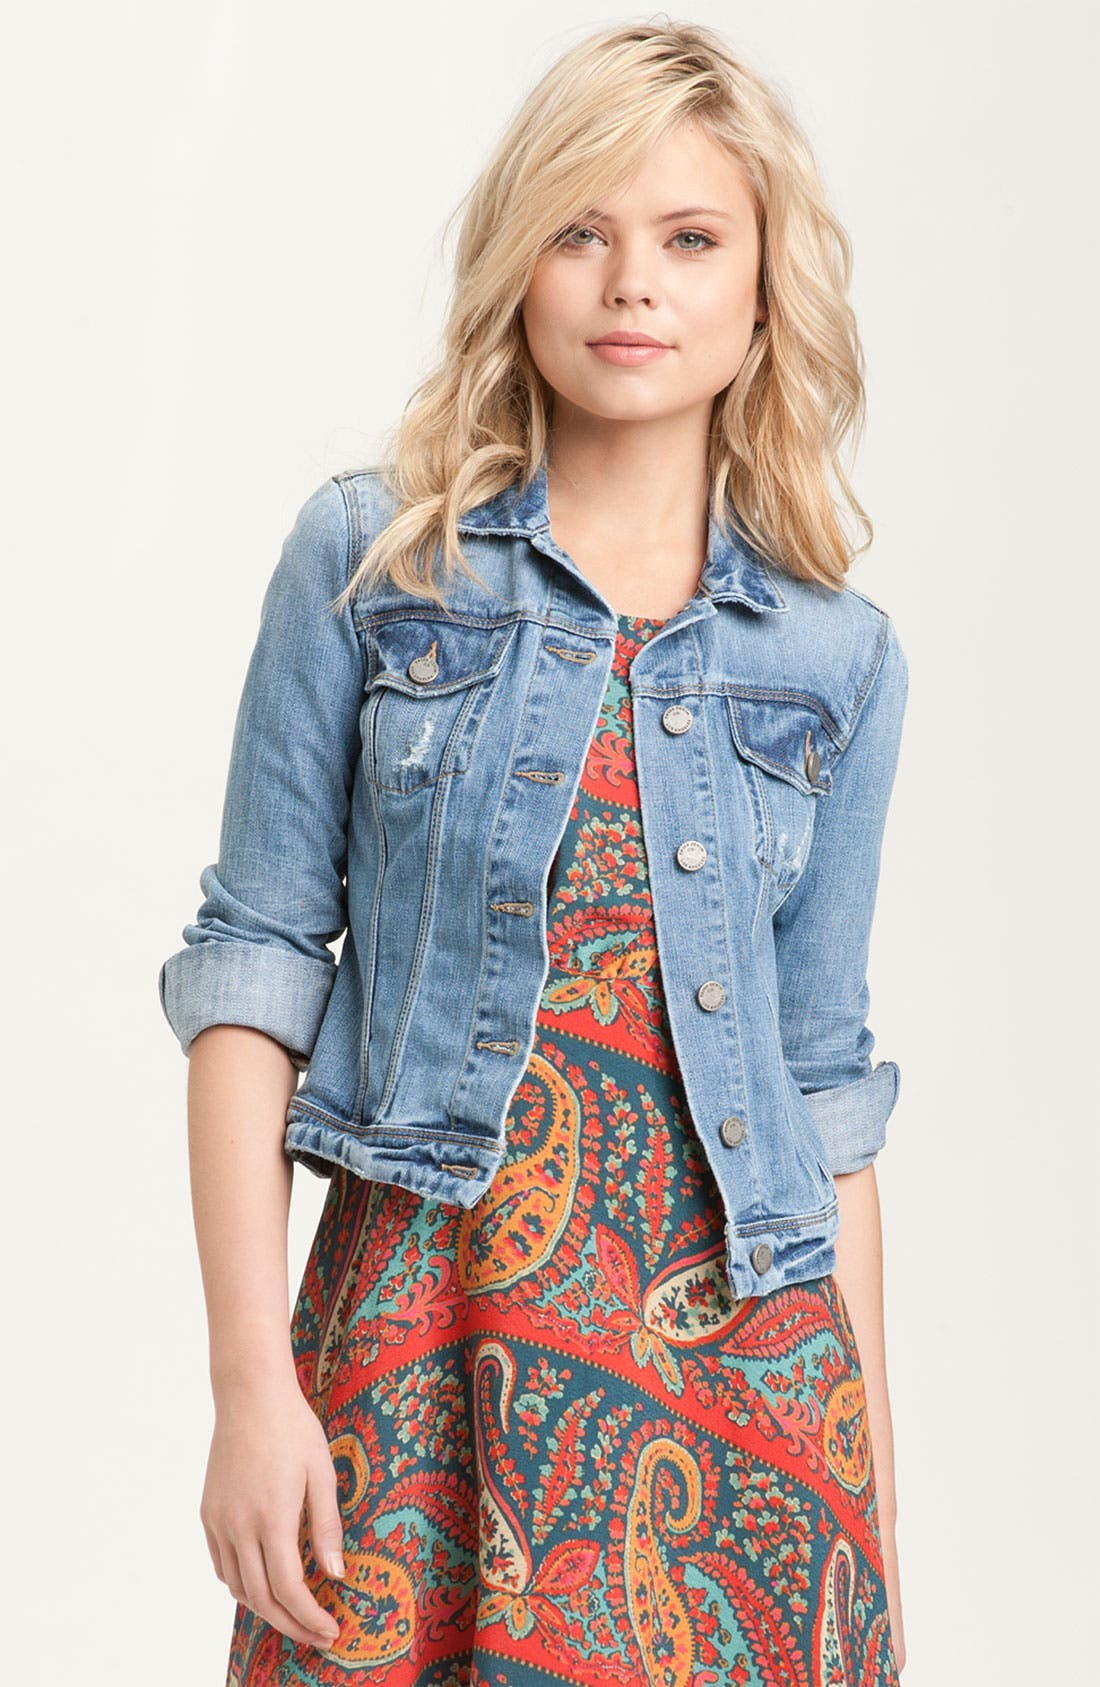 Alternate Image 1 Selected - Paige Denim 'Vermont' Distressed Denim Jacket